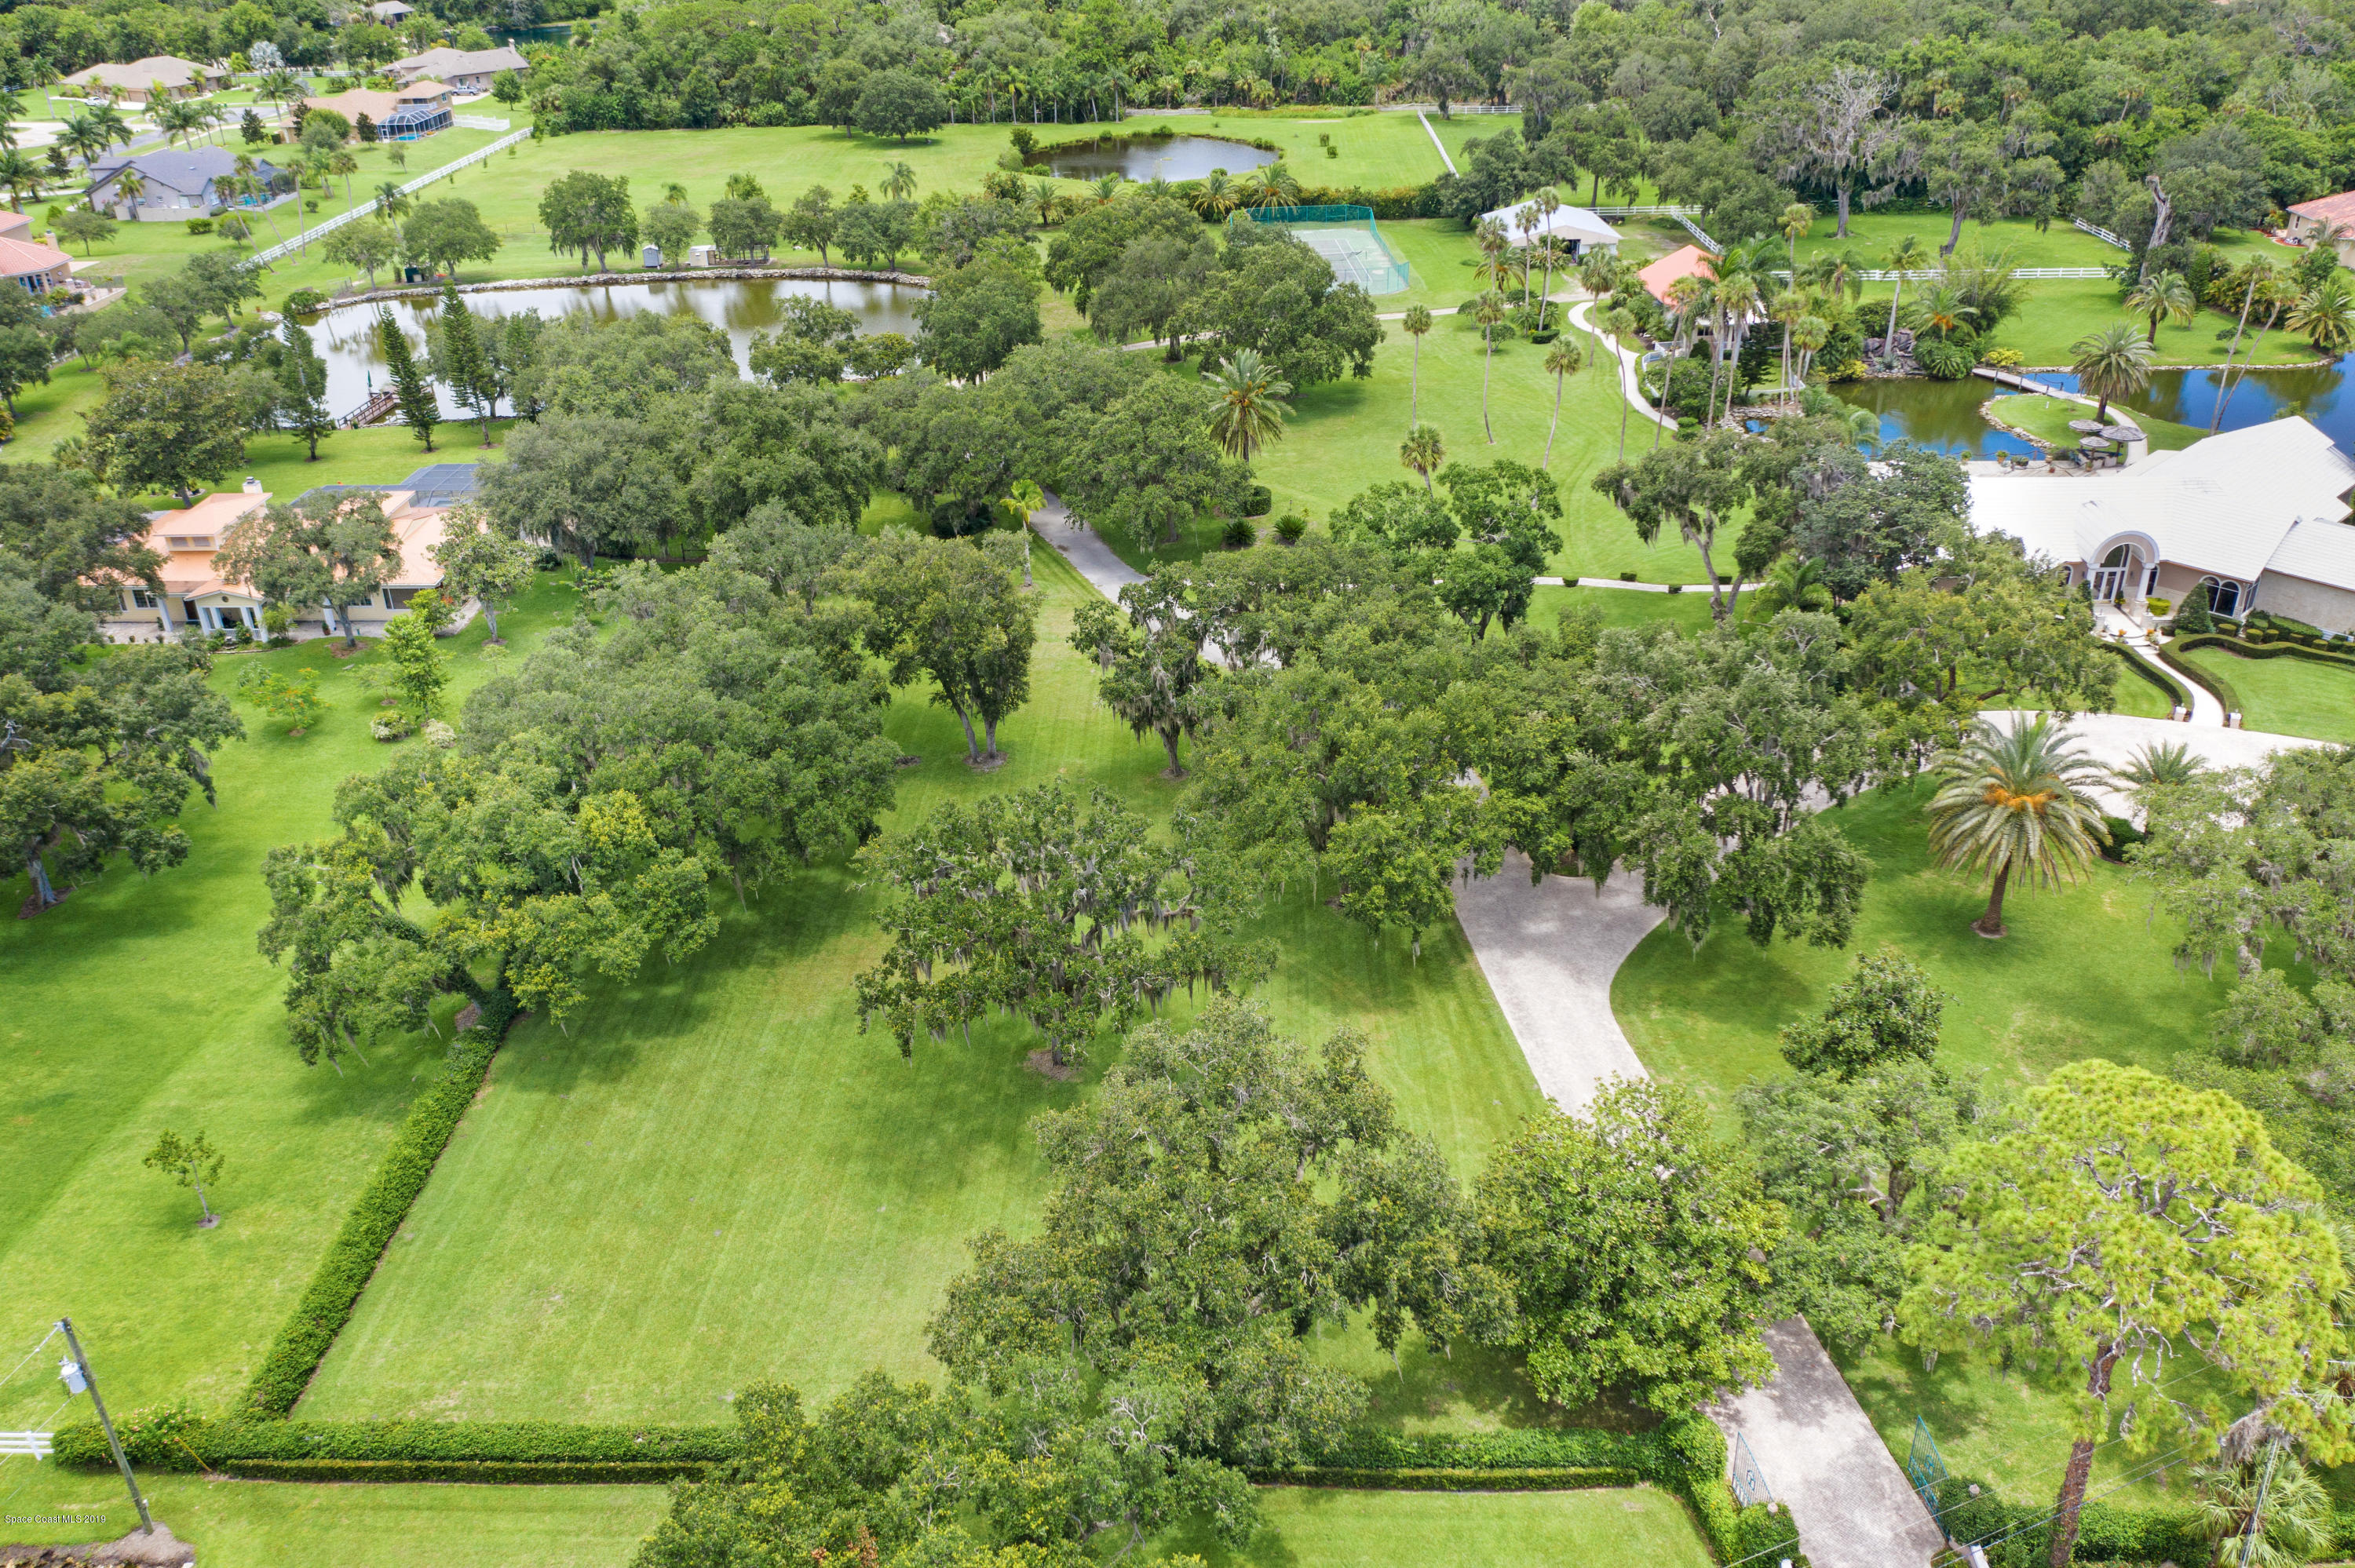 Land for Sale at 3970 Parkway Melbourne, Florida 32934 United States